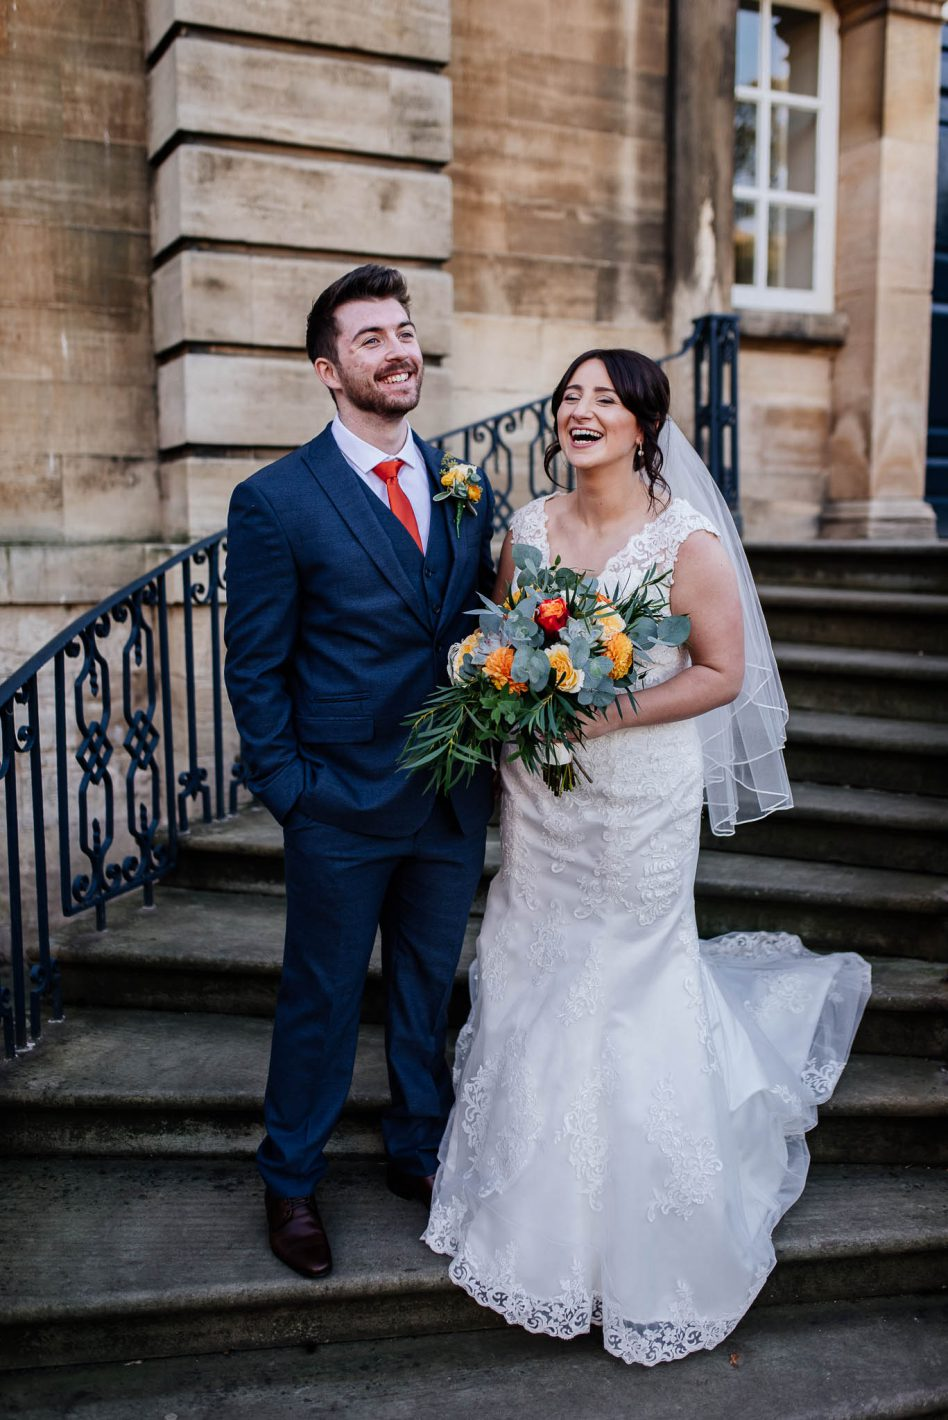 Bride and Groom at Cusworth Hall in Doncaster